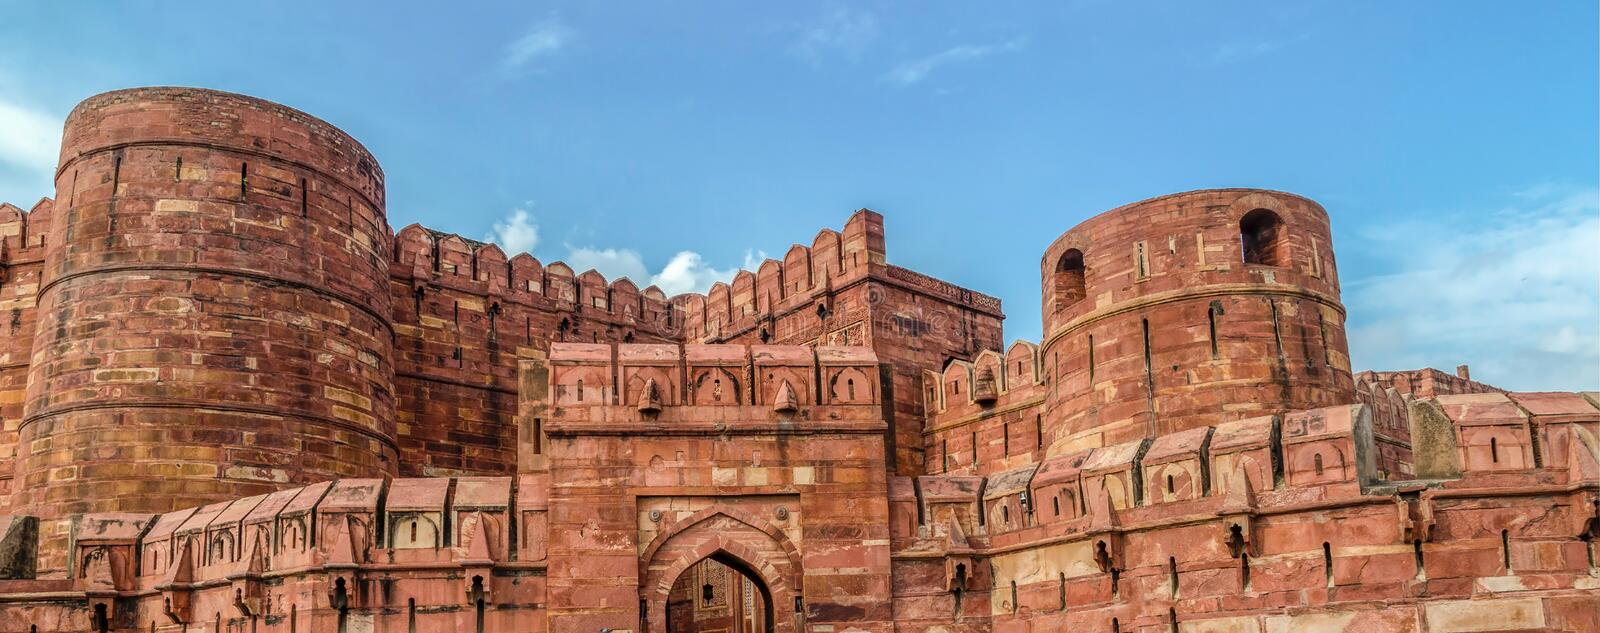 Red Fort,Agra, Uttar Pradesh, India. The Gate Akbar of old Red Fort, Agra, Uttar Pradesh,India, Islamic architecture stock images